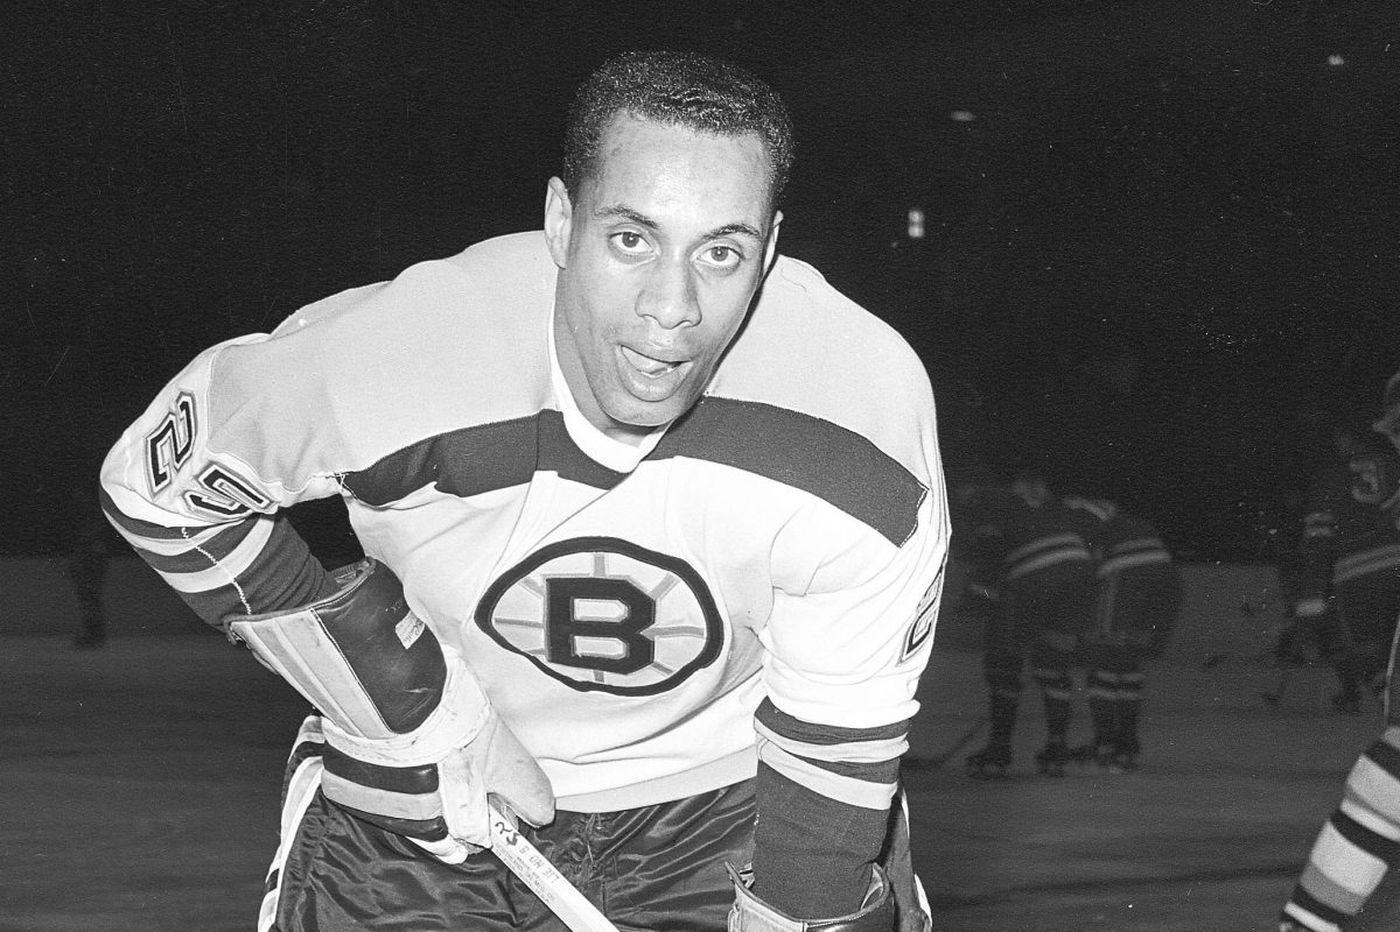 Willie O'Ree, the Jackie Robinson of hockey, to inspire youths in Philly